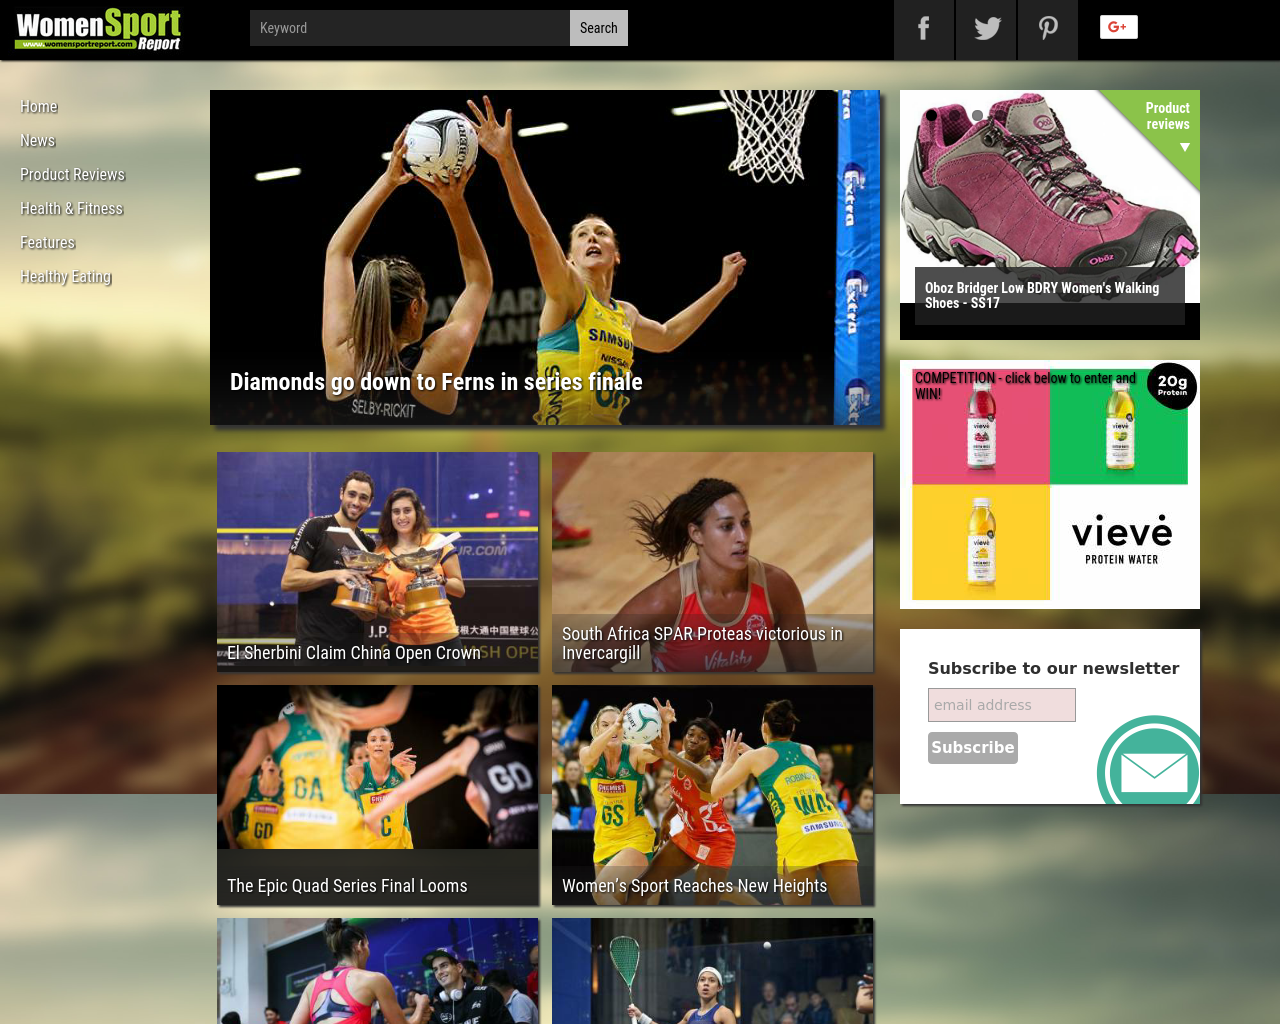 WomenSport-Report-Advertising-Reviews-Pricing